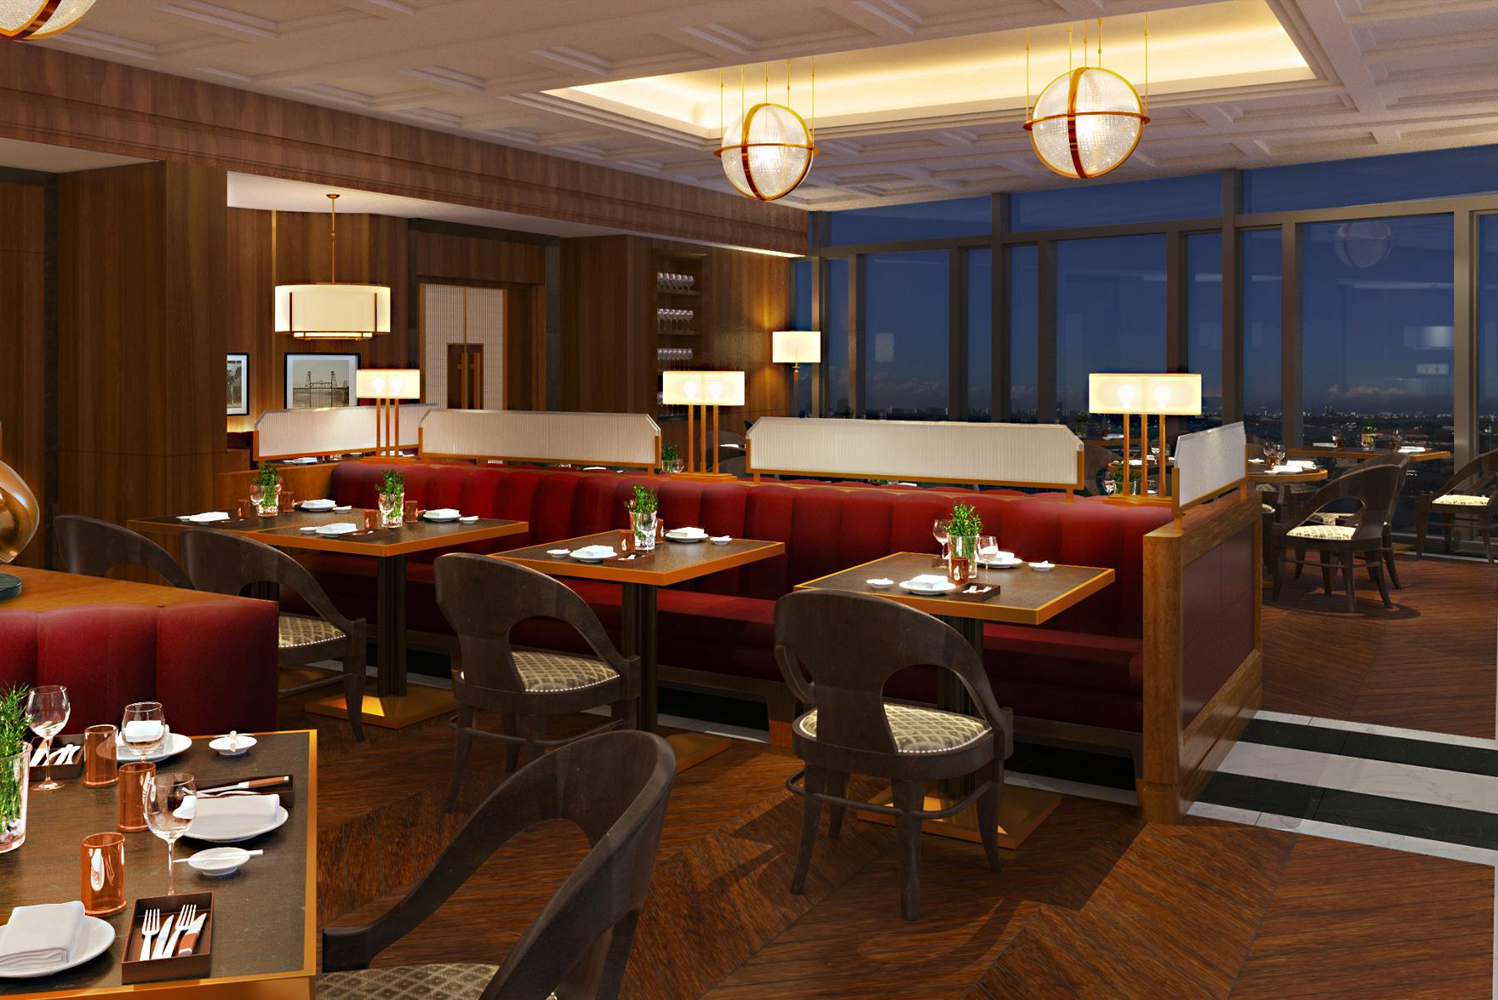 Mandarin Oriental Wangfujing will have two restaurants and a rooftop bar.